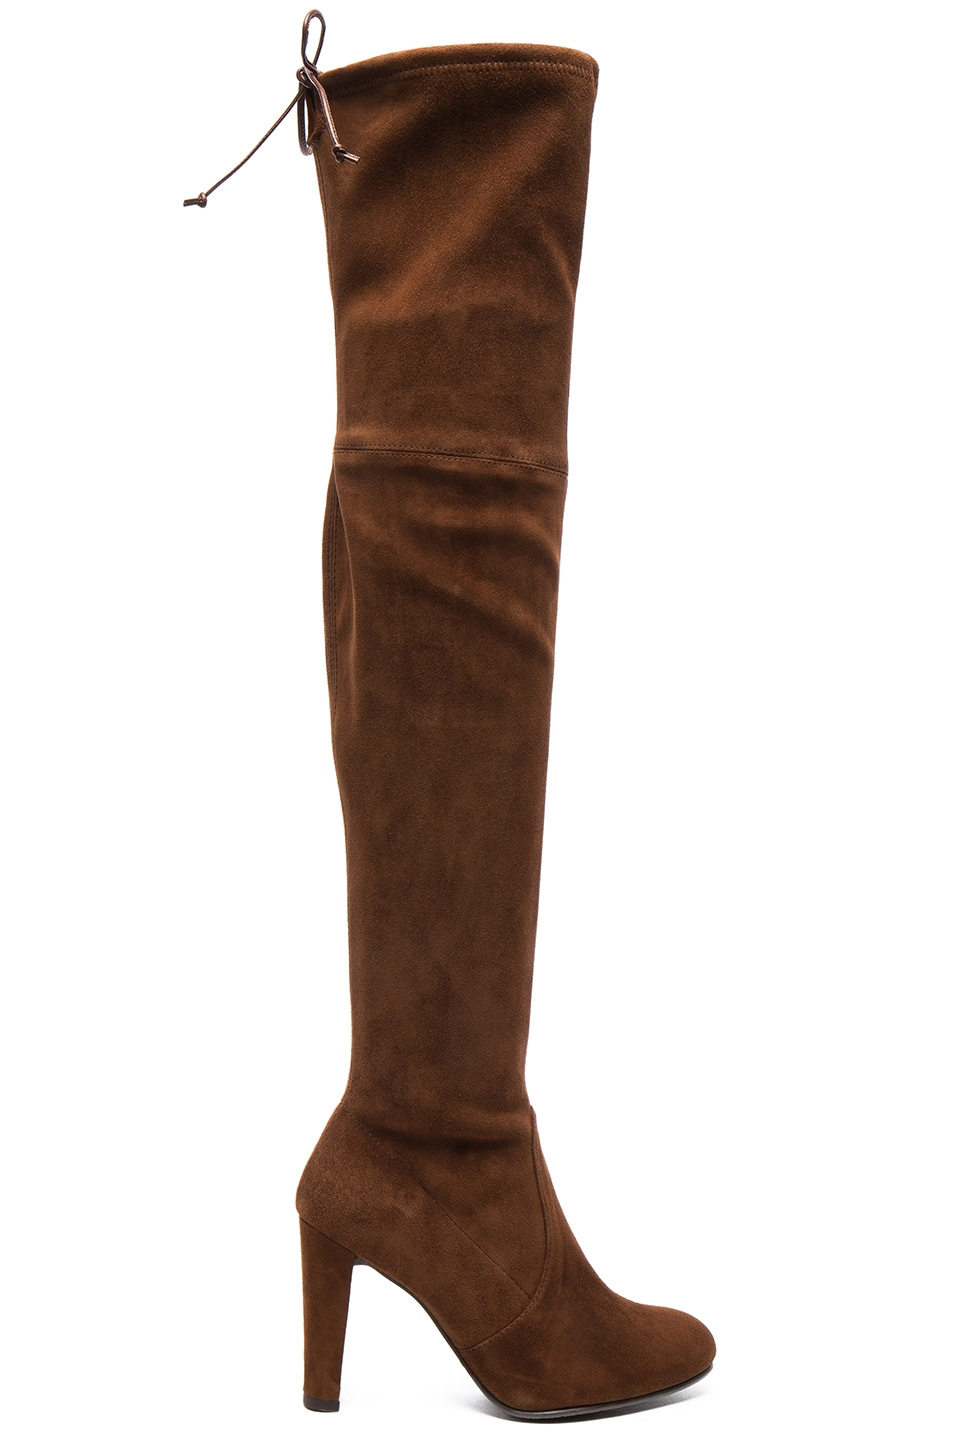 Image 1 of Stuart Weitzman Suede Highland Boots in Nutmeg